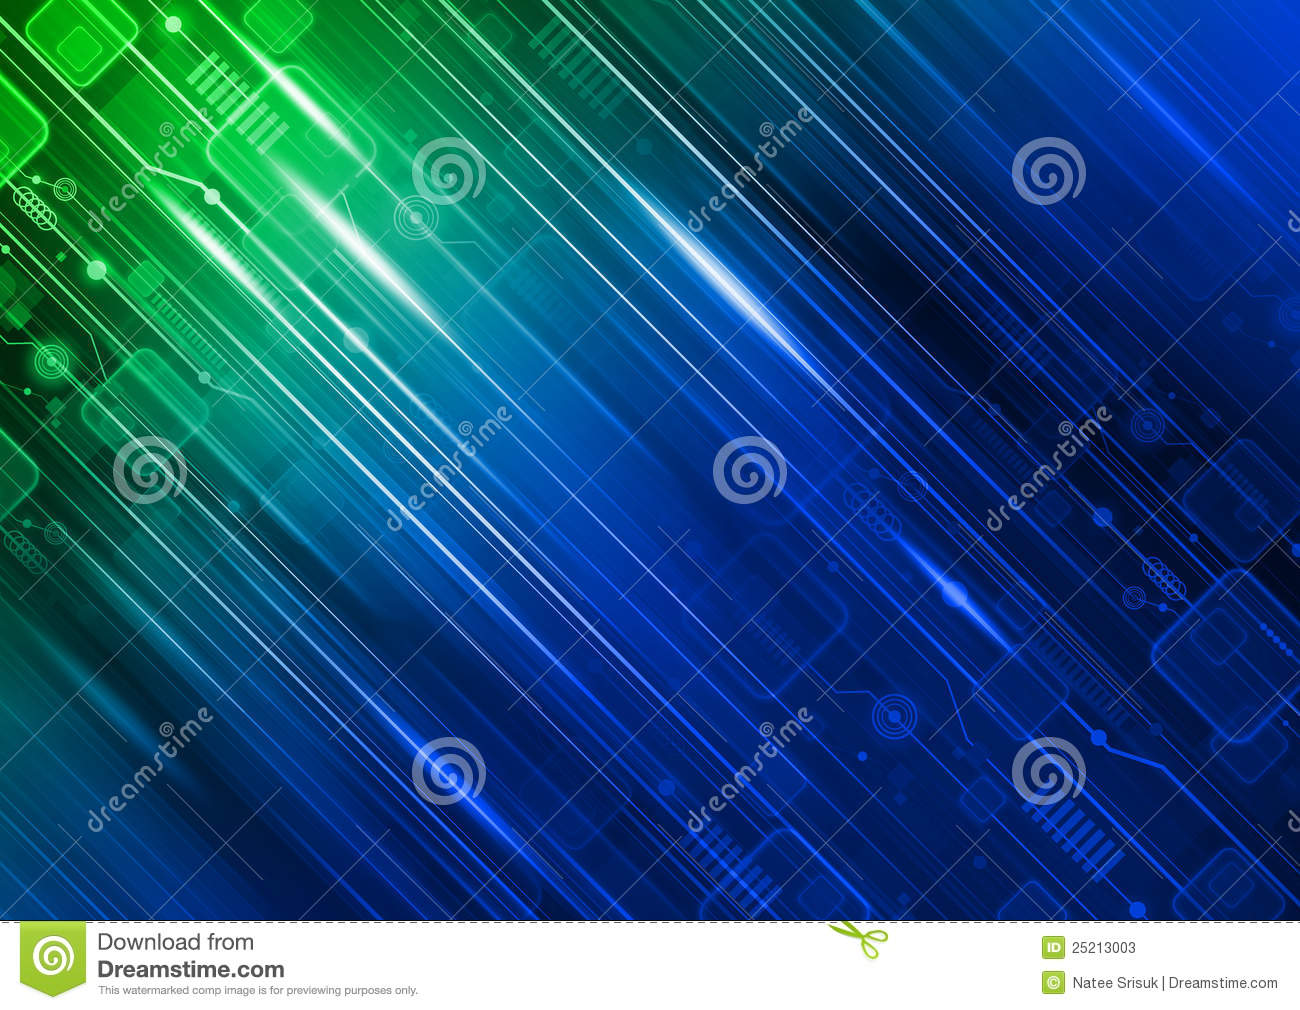 Technology background design stock illustration image for Design teich